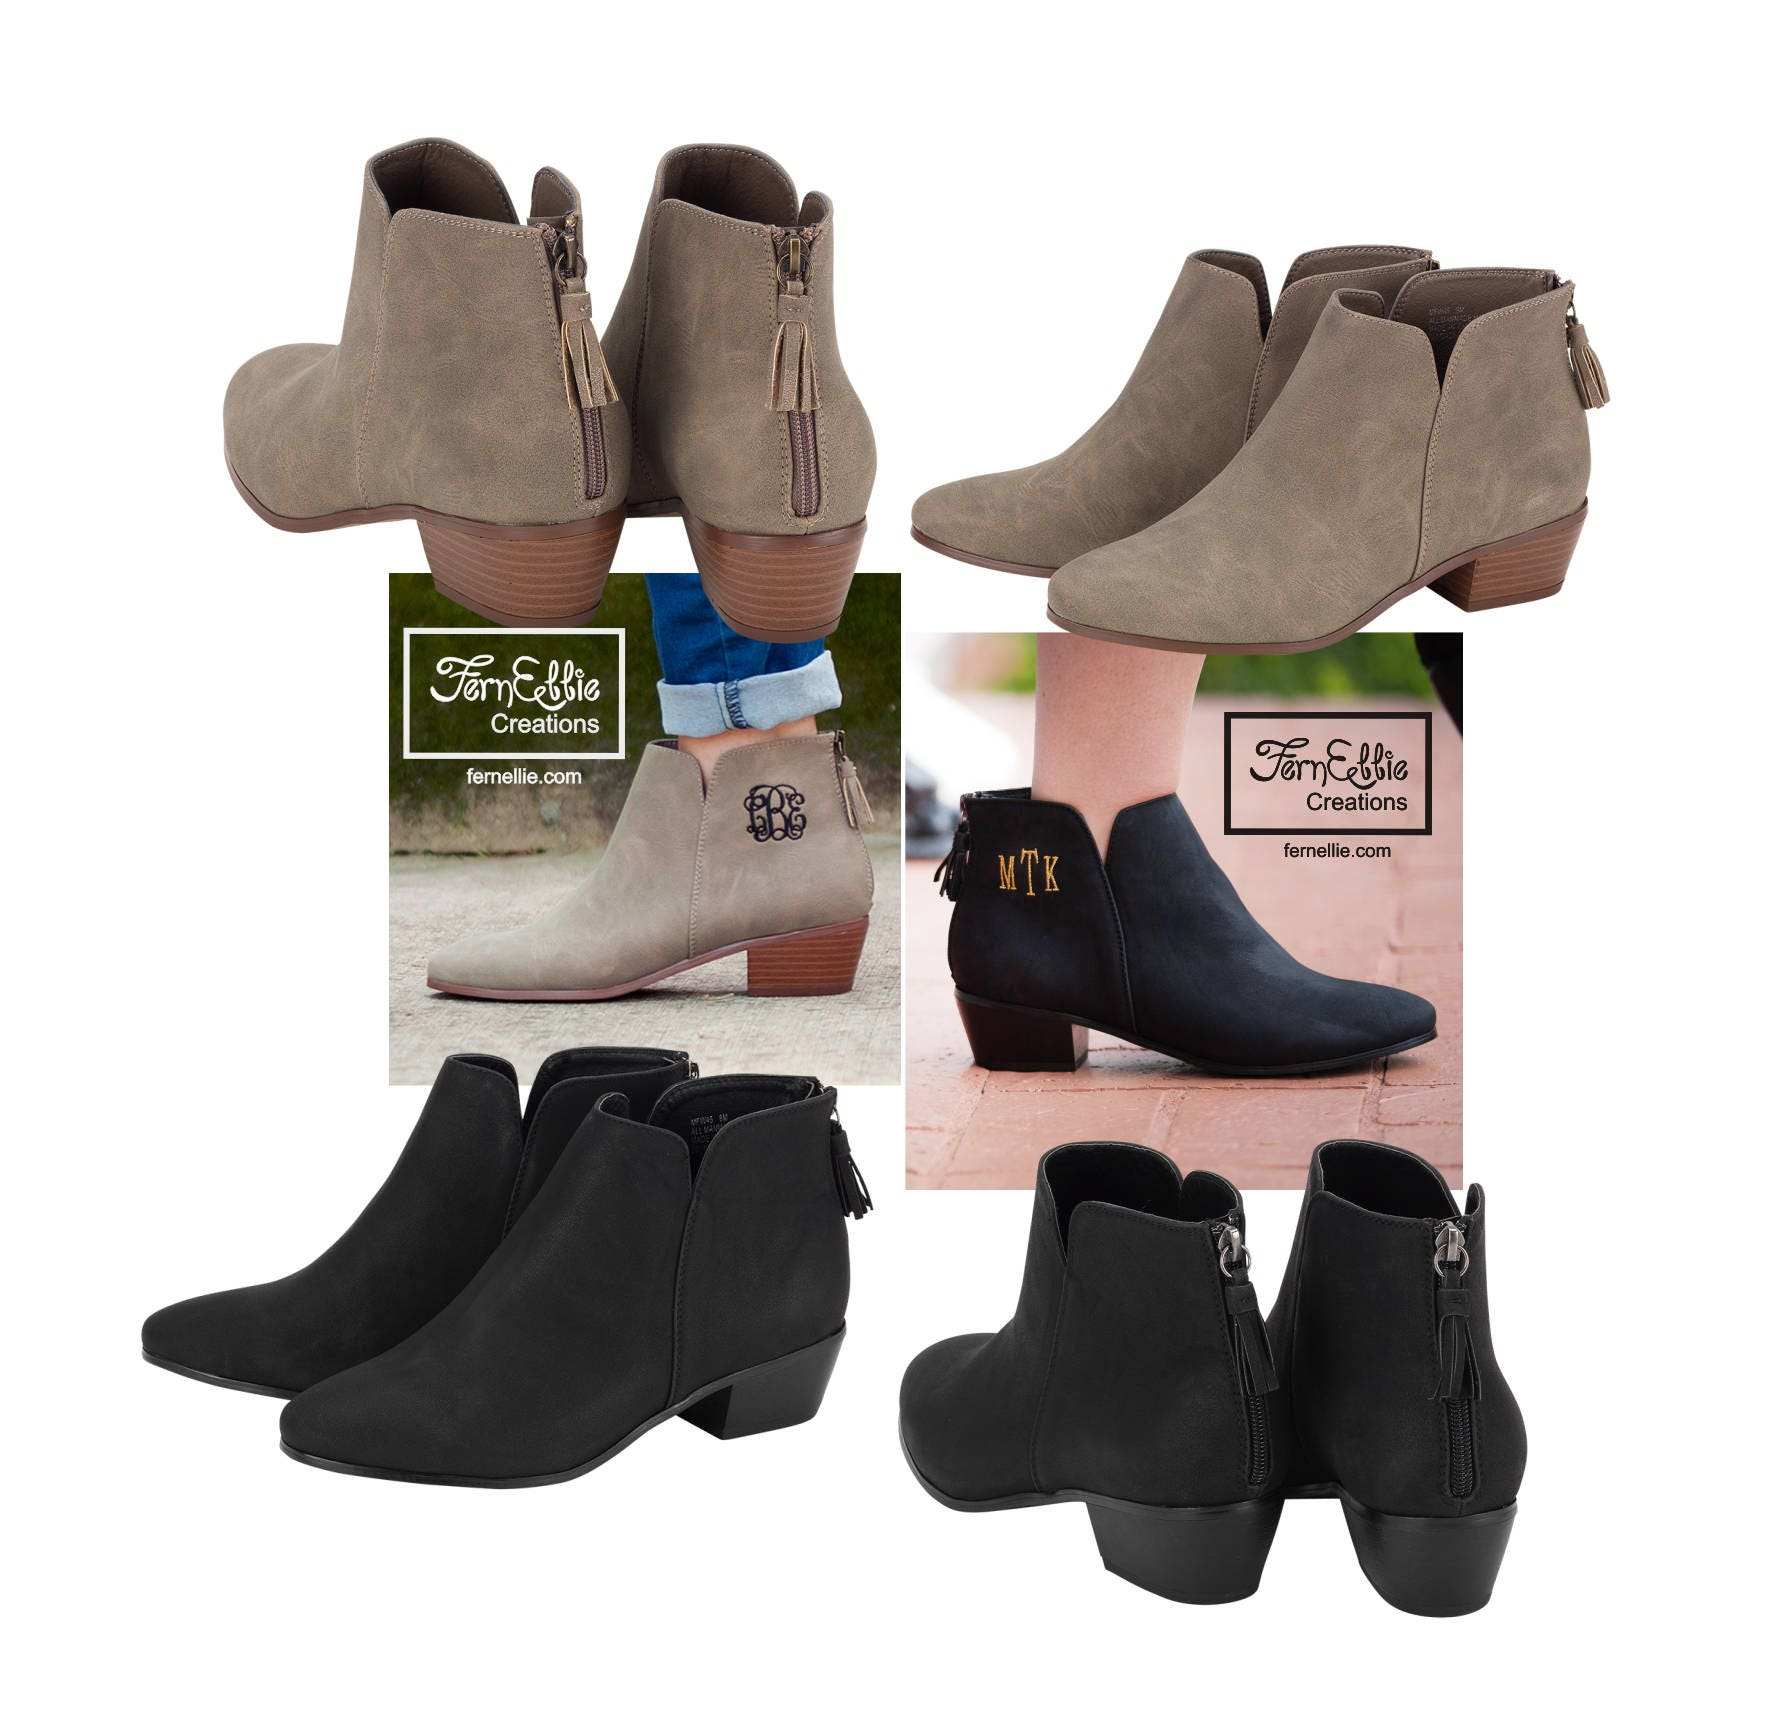 SHIPS OUT NEXT Day! Monogrammed Boots, Personalized Boots